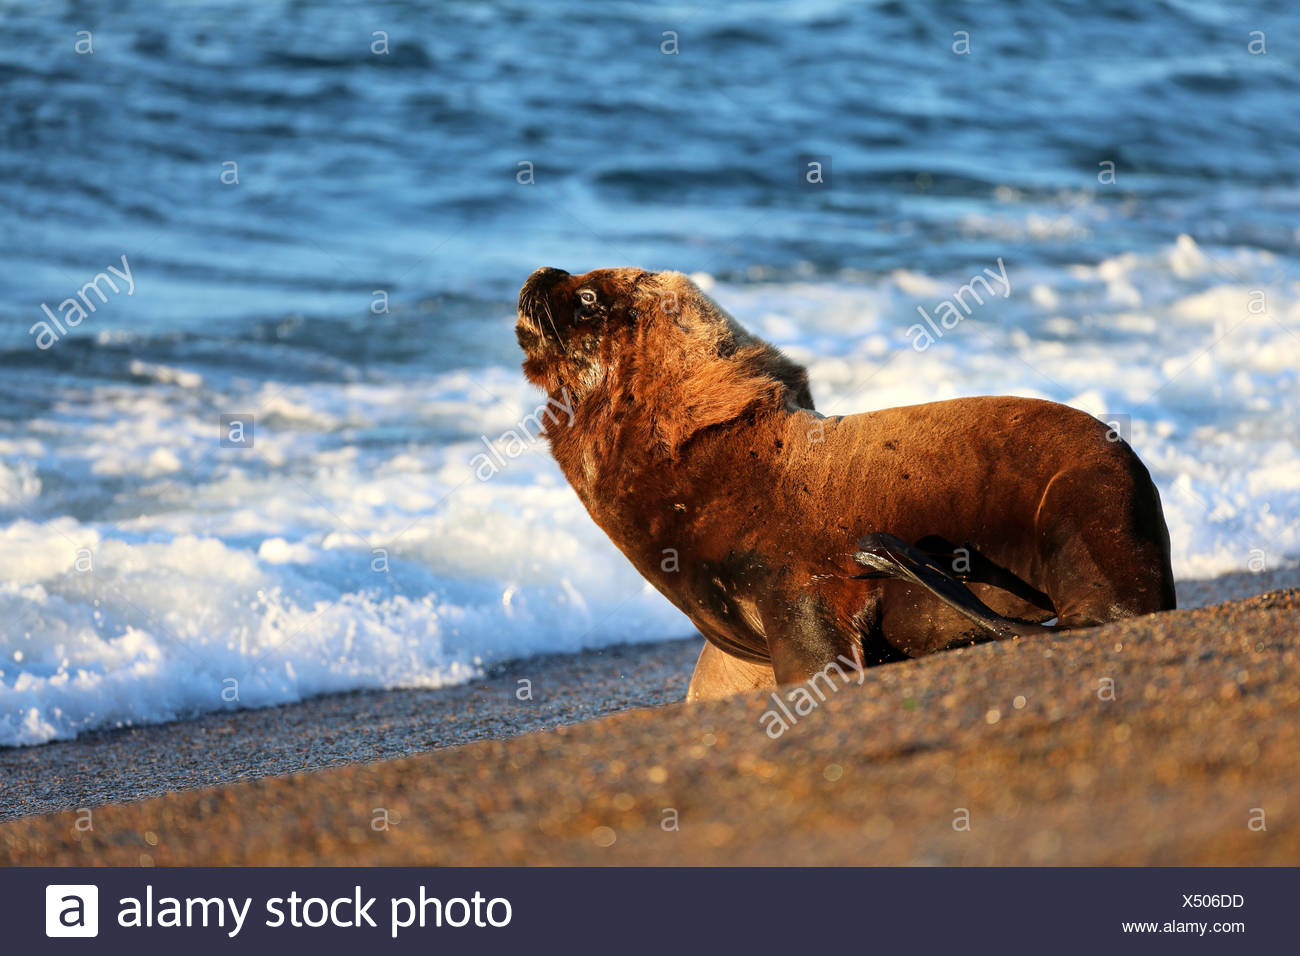 Southern sea lion, South American sea lion, Patagonian sea lion (Otaria flavescens, Otaria byronia), bull walking in the water, Argentina, Patagonia, Valdes Stock Photo